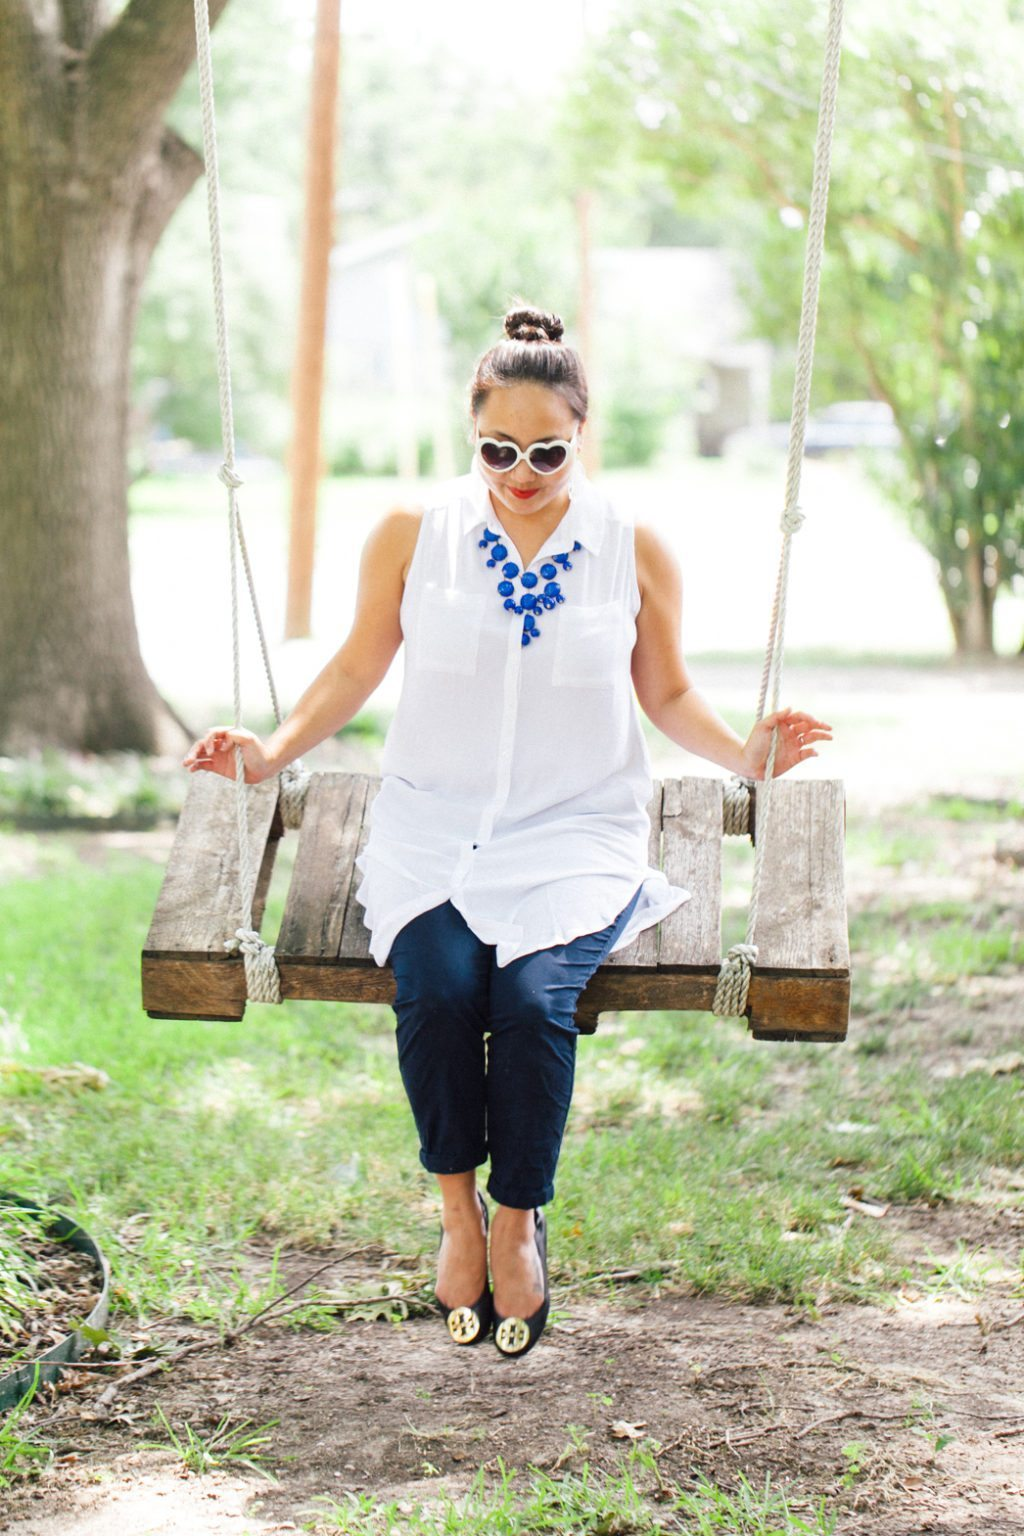 dallas-fashion-blogger-stephanie-drenka-4th-of-july-8933